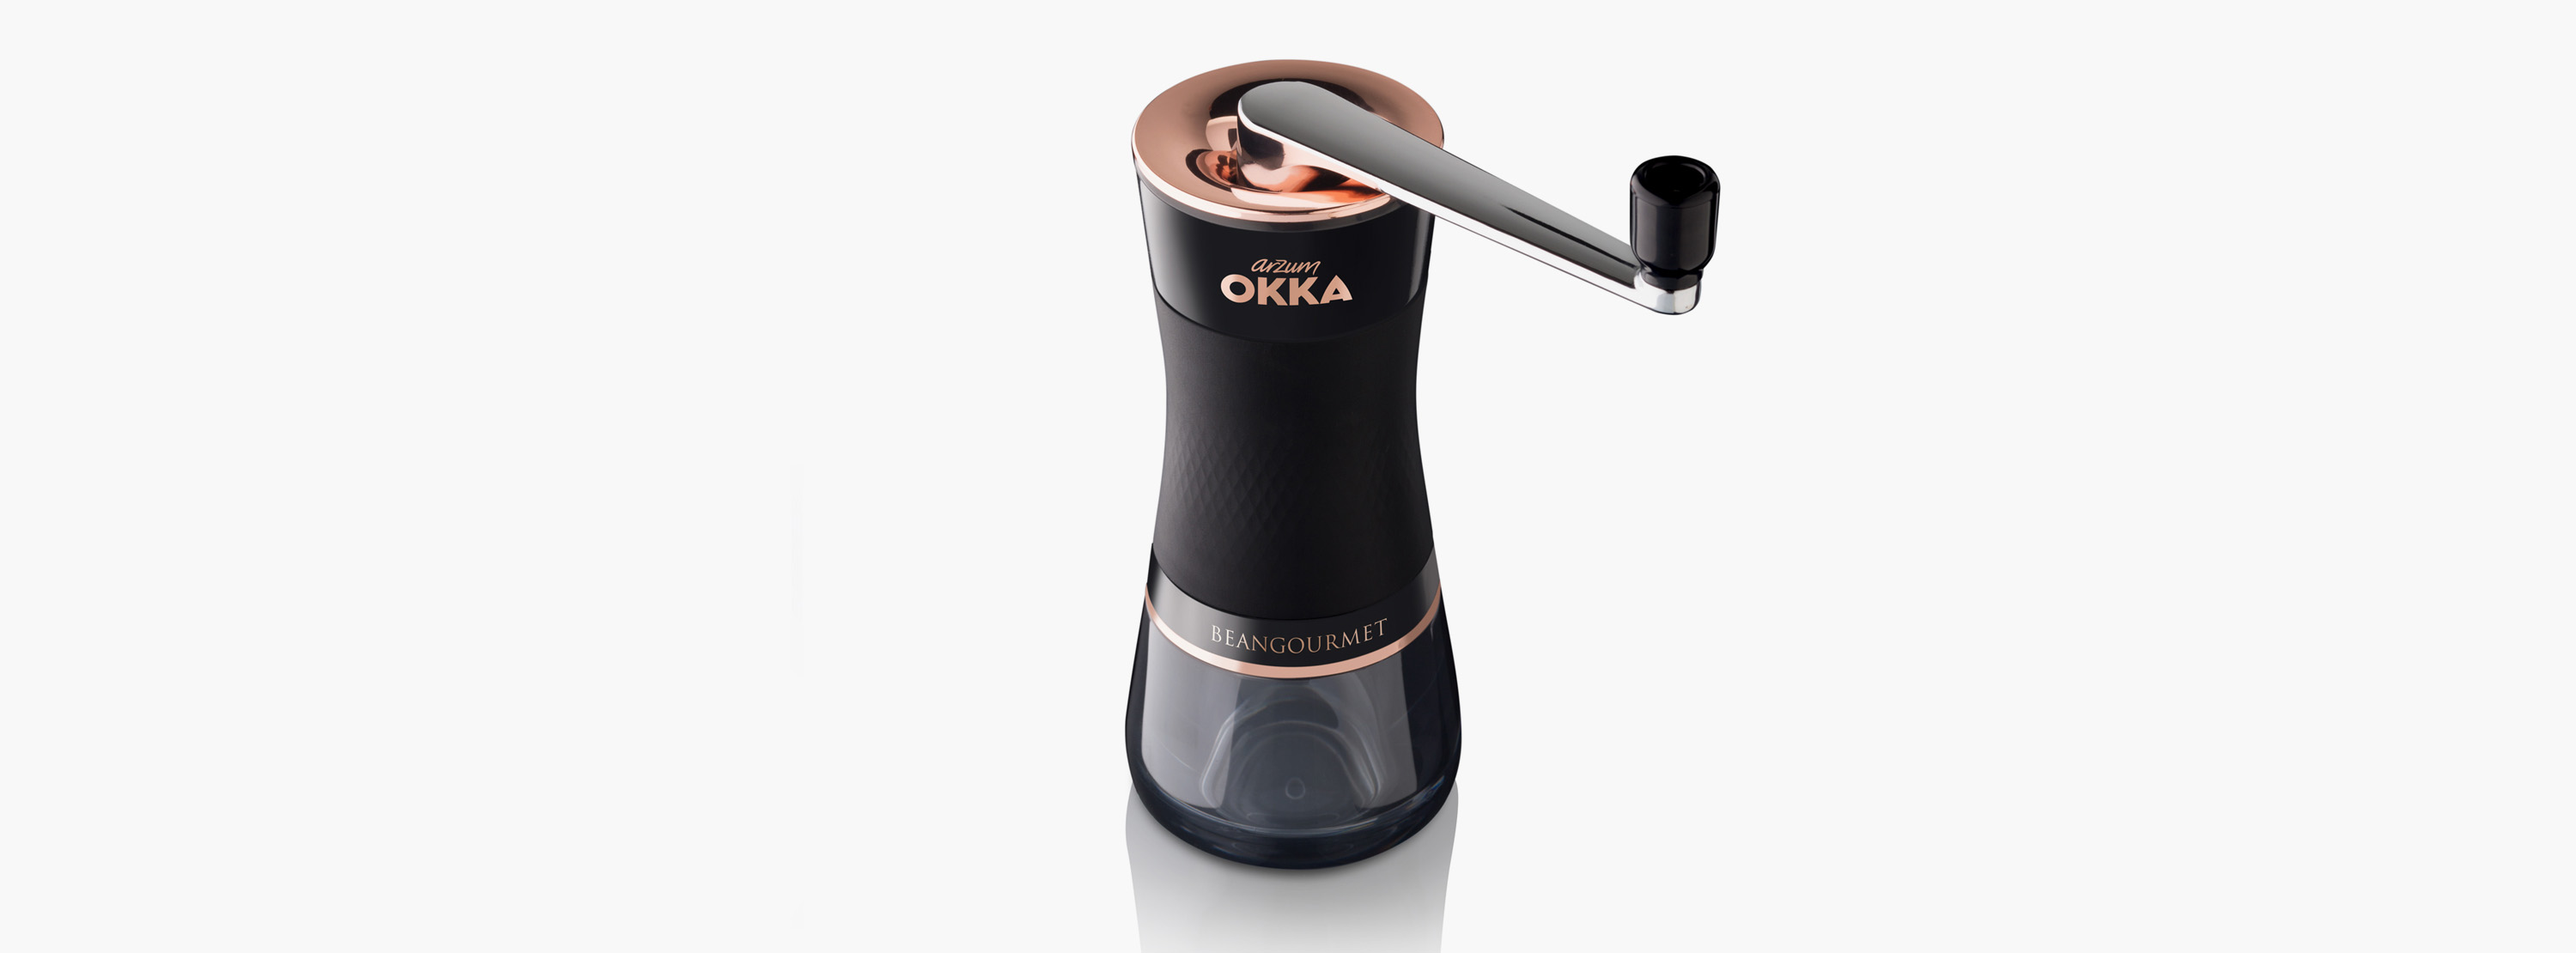 Arzum Okka Beangourmet Coffee Grinder Design Photo